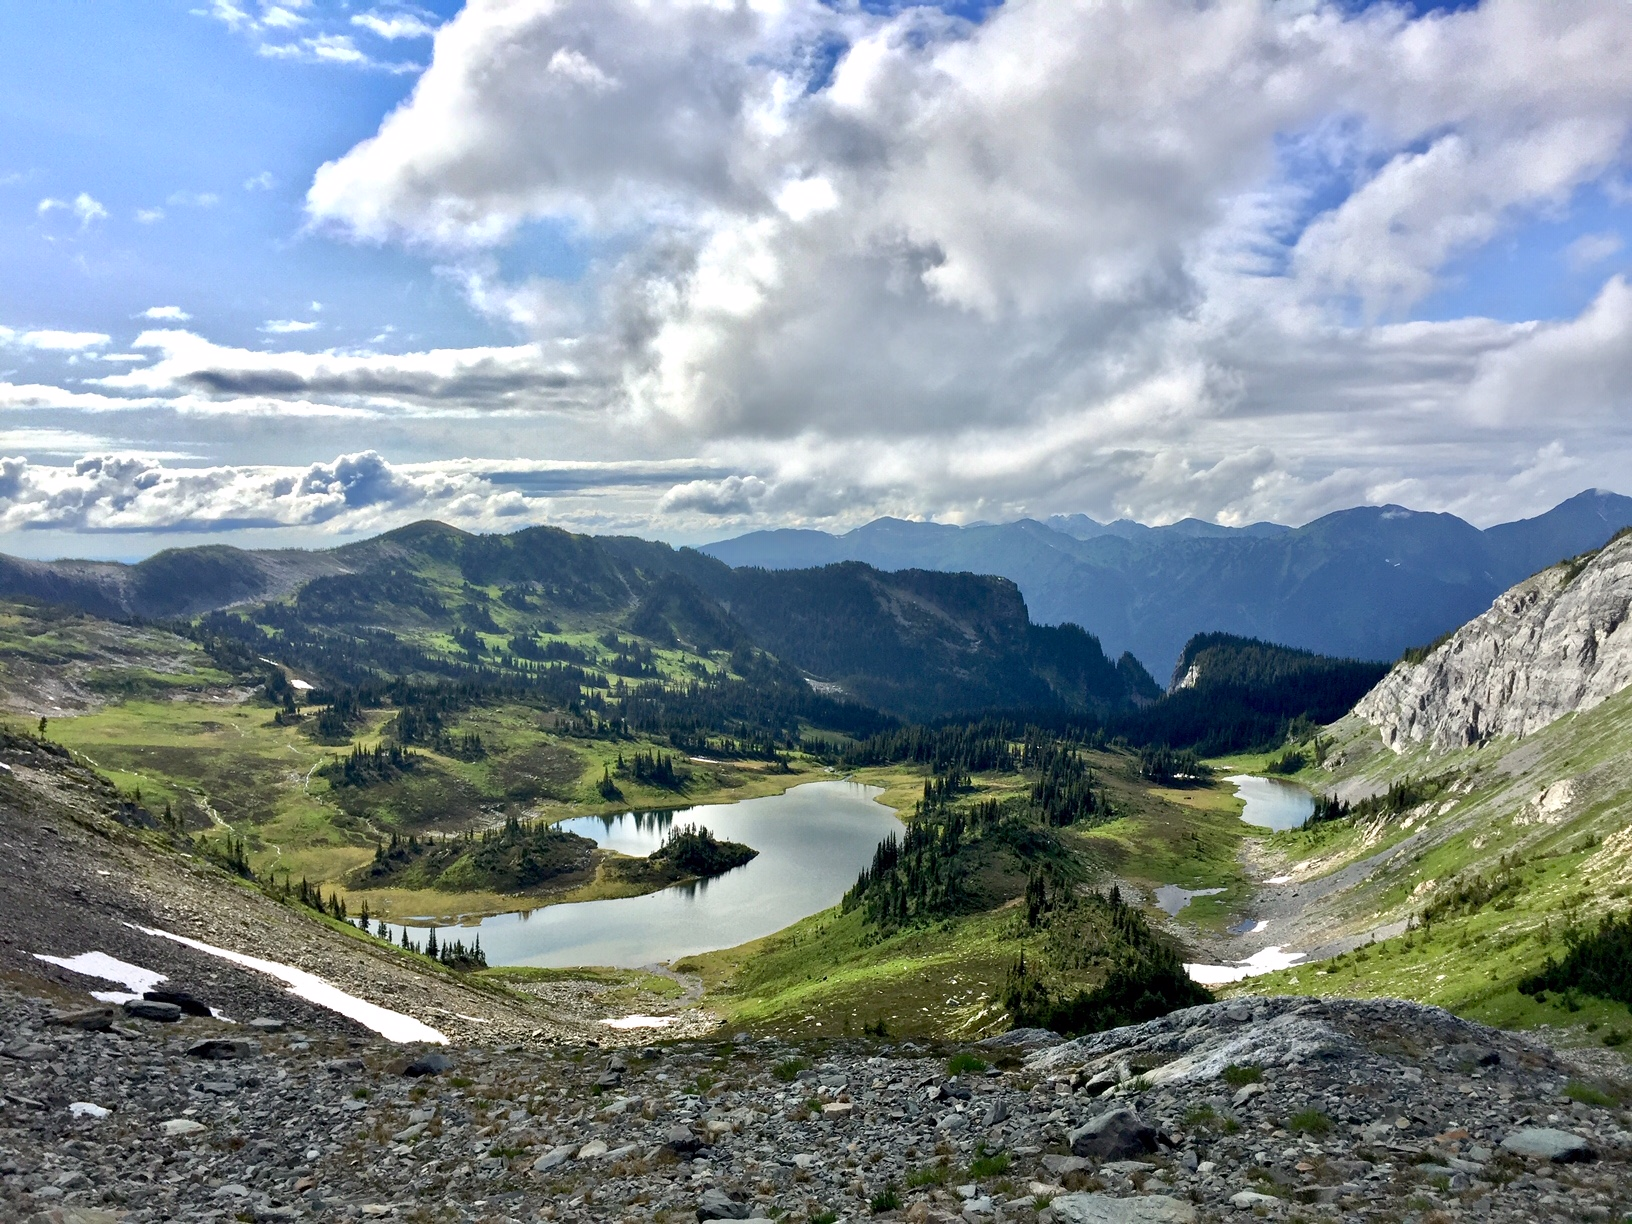 The alpine lakes and meadow from the ridgeline of Fang Mountain.